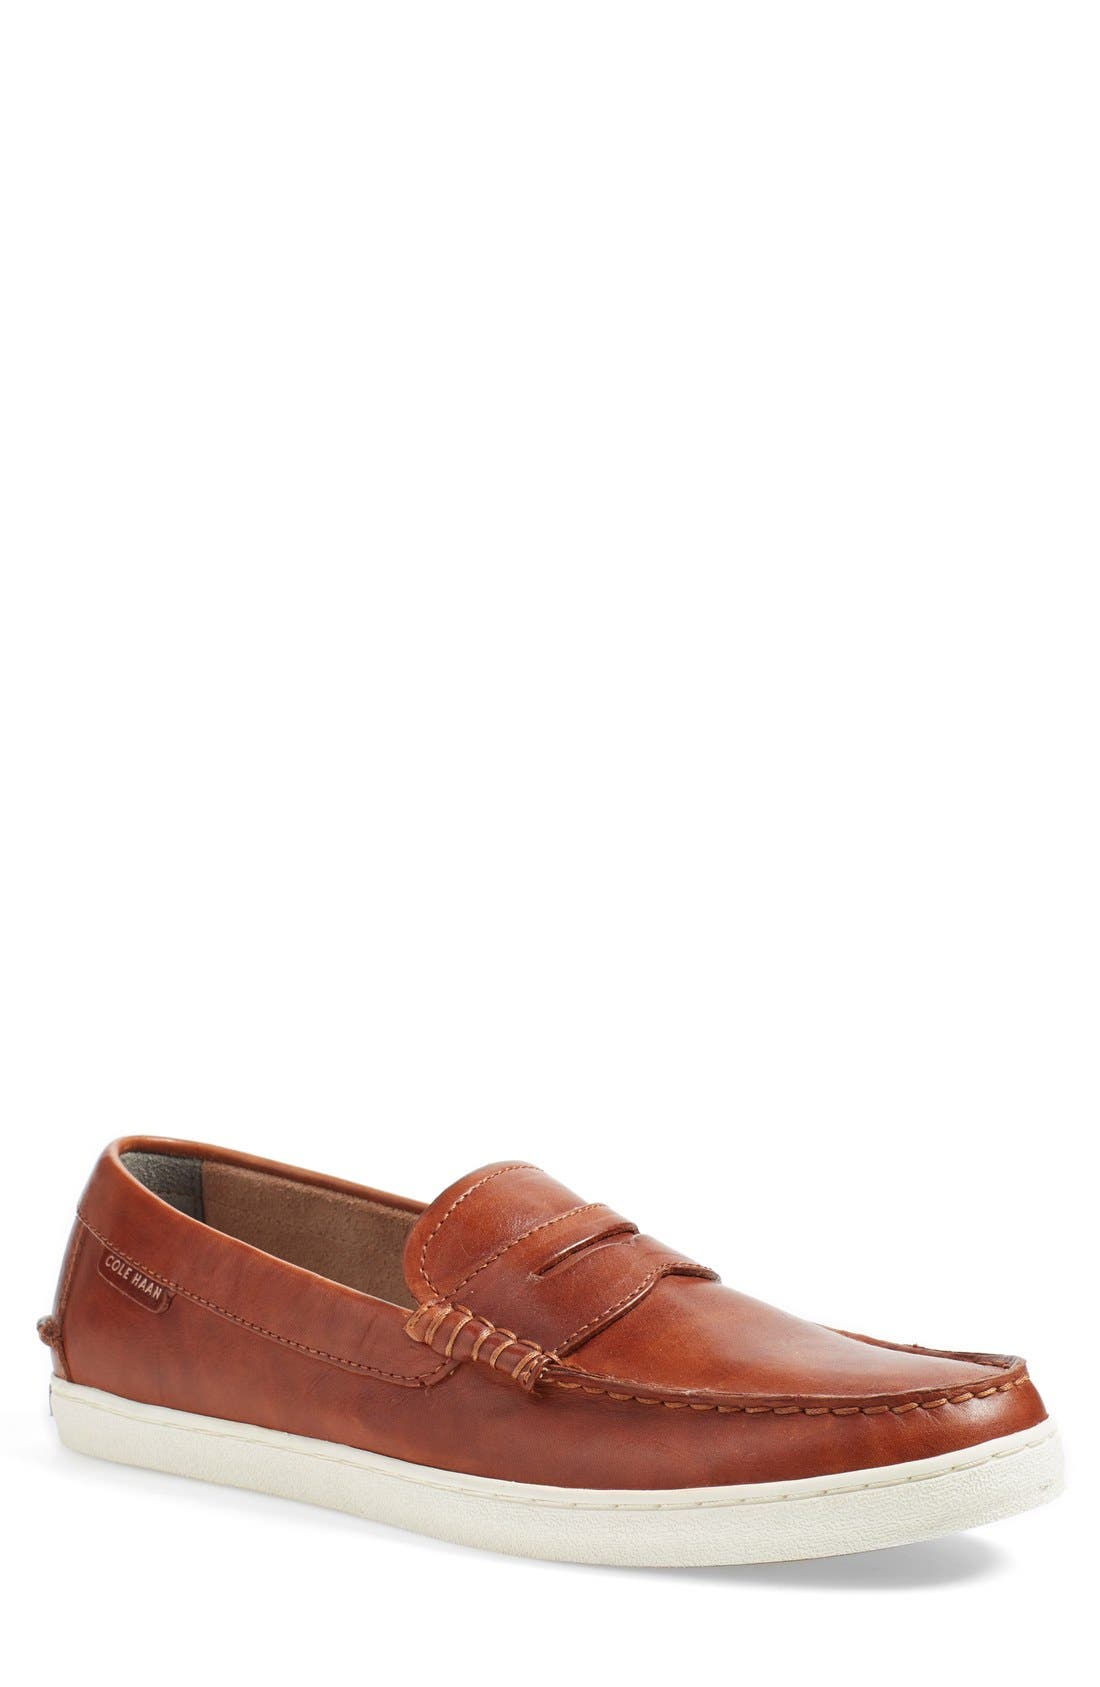 'Pinch' Penny Loafer,                             Main thumbnail 1, color,                             BRITISH TAN ANTIQUE LEATHER